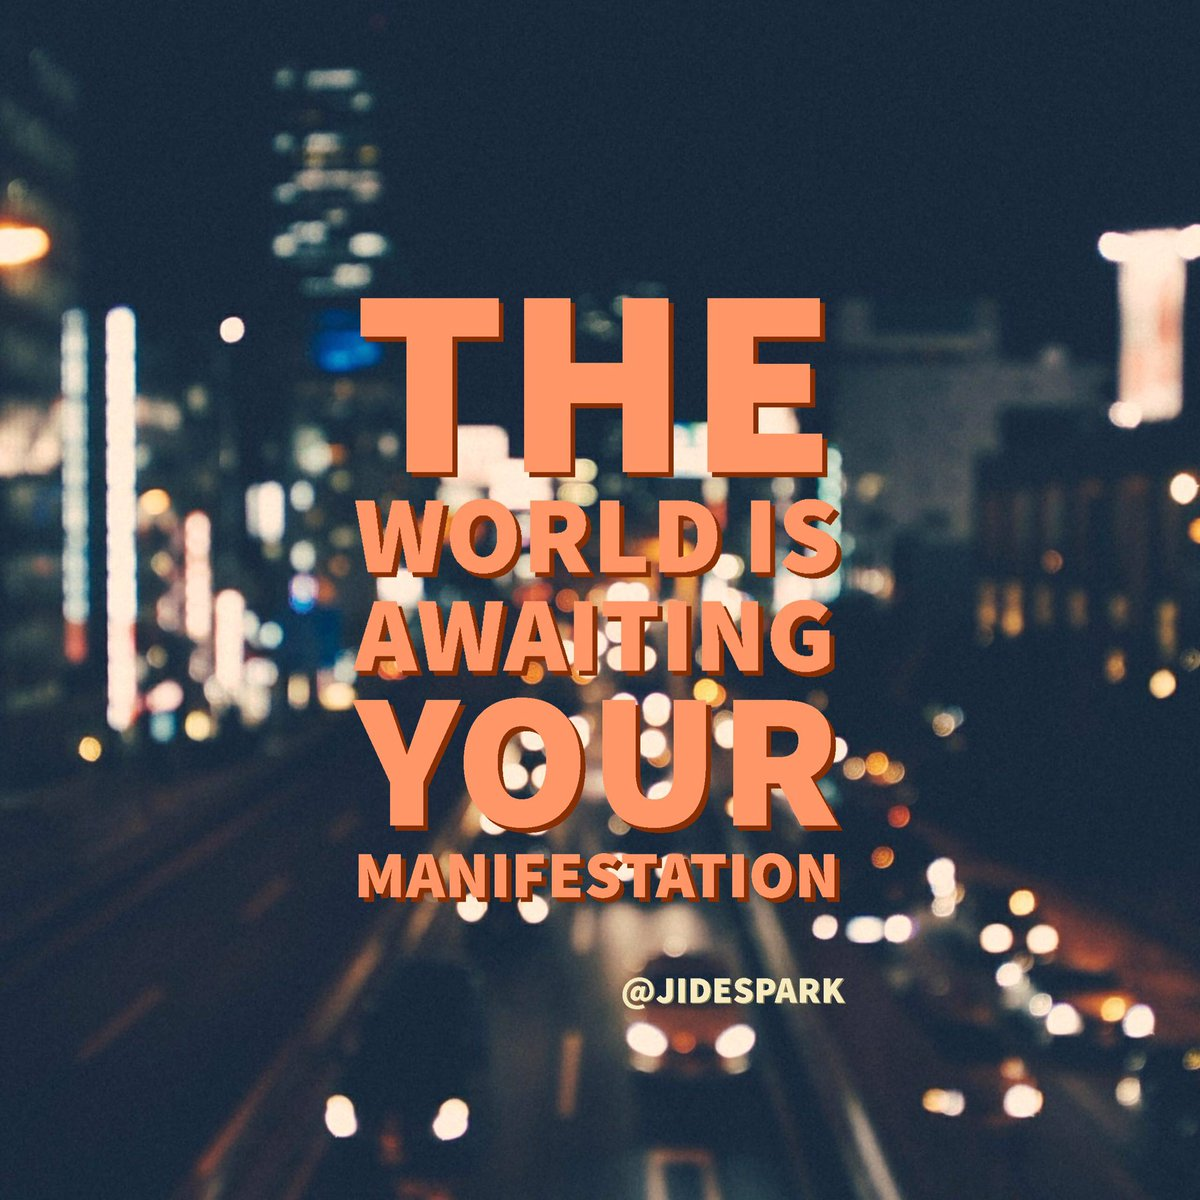 It&#39;s time to step out of your hiding place. Your generation needs what you carry #manifestation #Nigeria<br>http://pic.twitter.com/AAVaHGwyR7